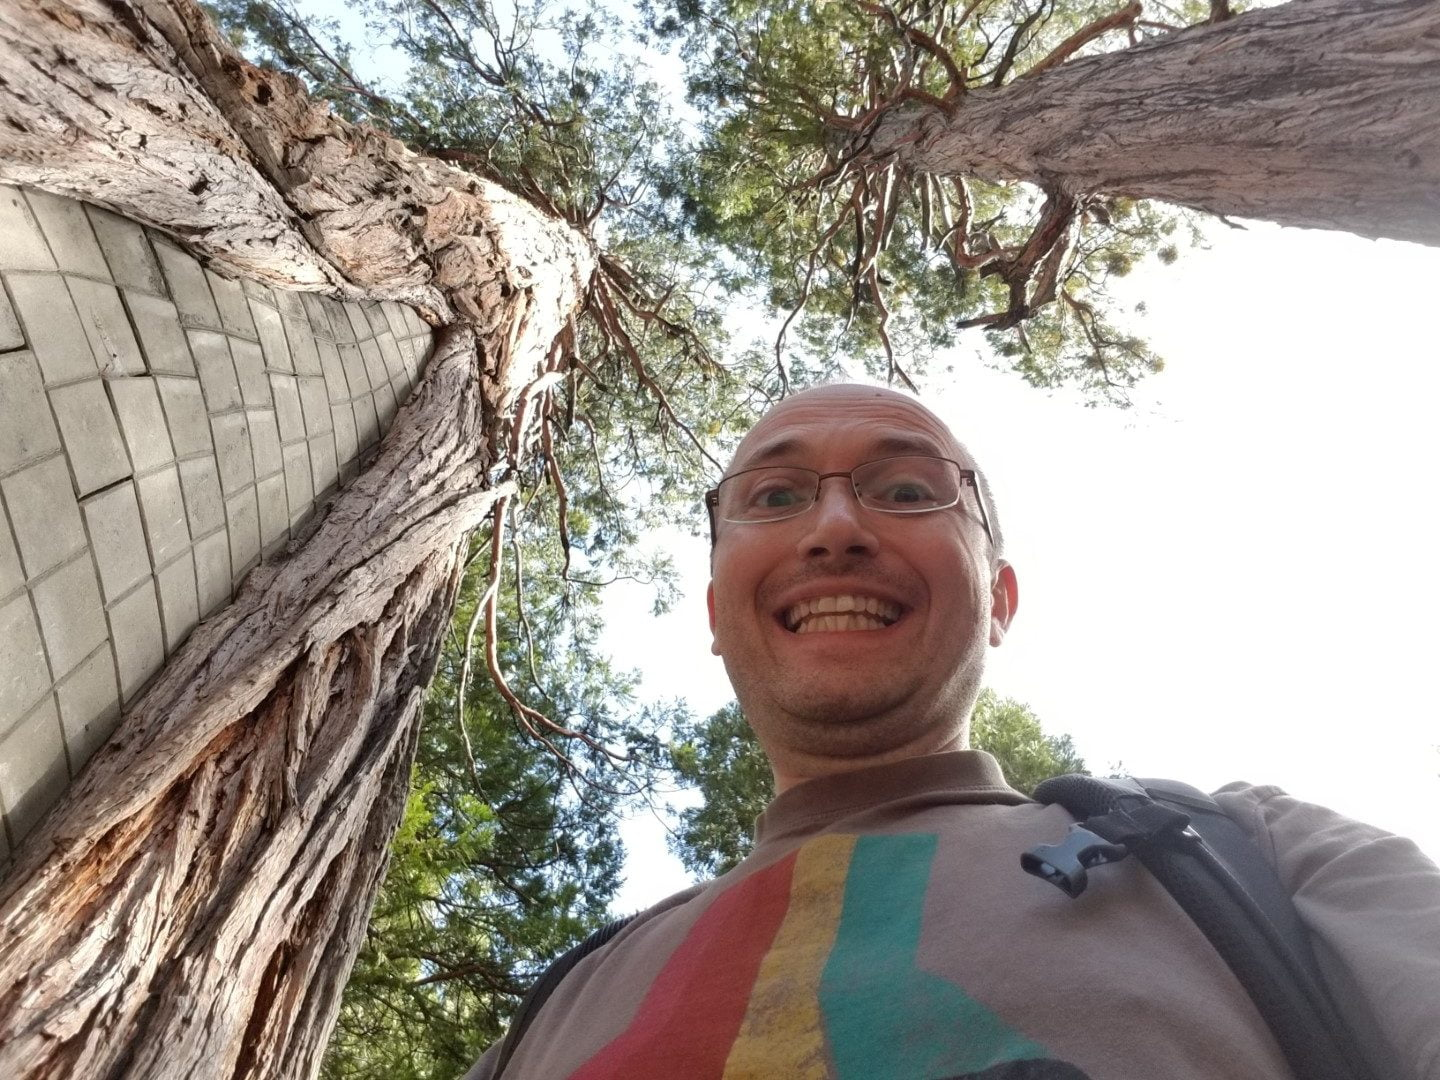 Selfie with Trees